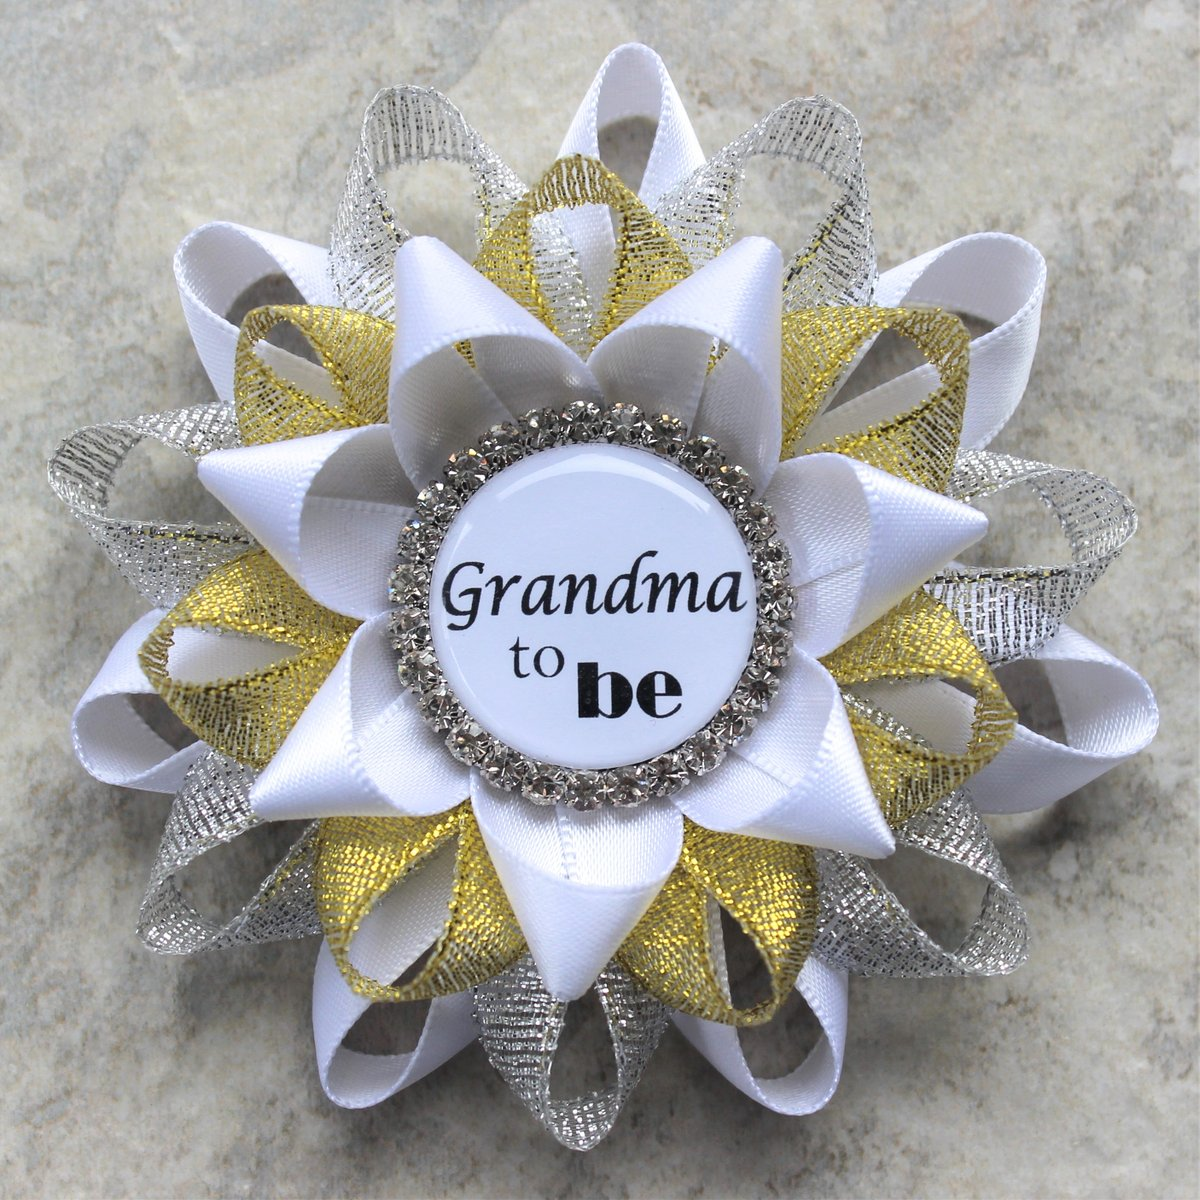 Twinkle Little Star Baby Shower Decorations, Baby Shower Pins, Baby Shower Ribbons, New Grandma Gift, Personalized, White, Silver, Gold  #etsyshop #shopsmall #sale #shopping #etsy #shop #store